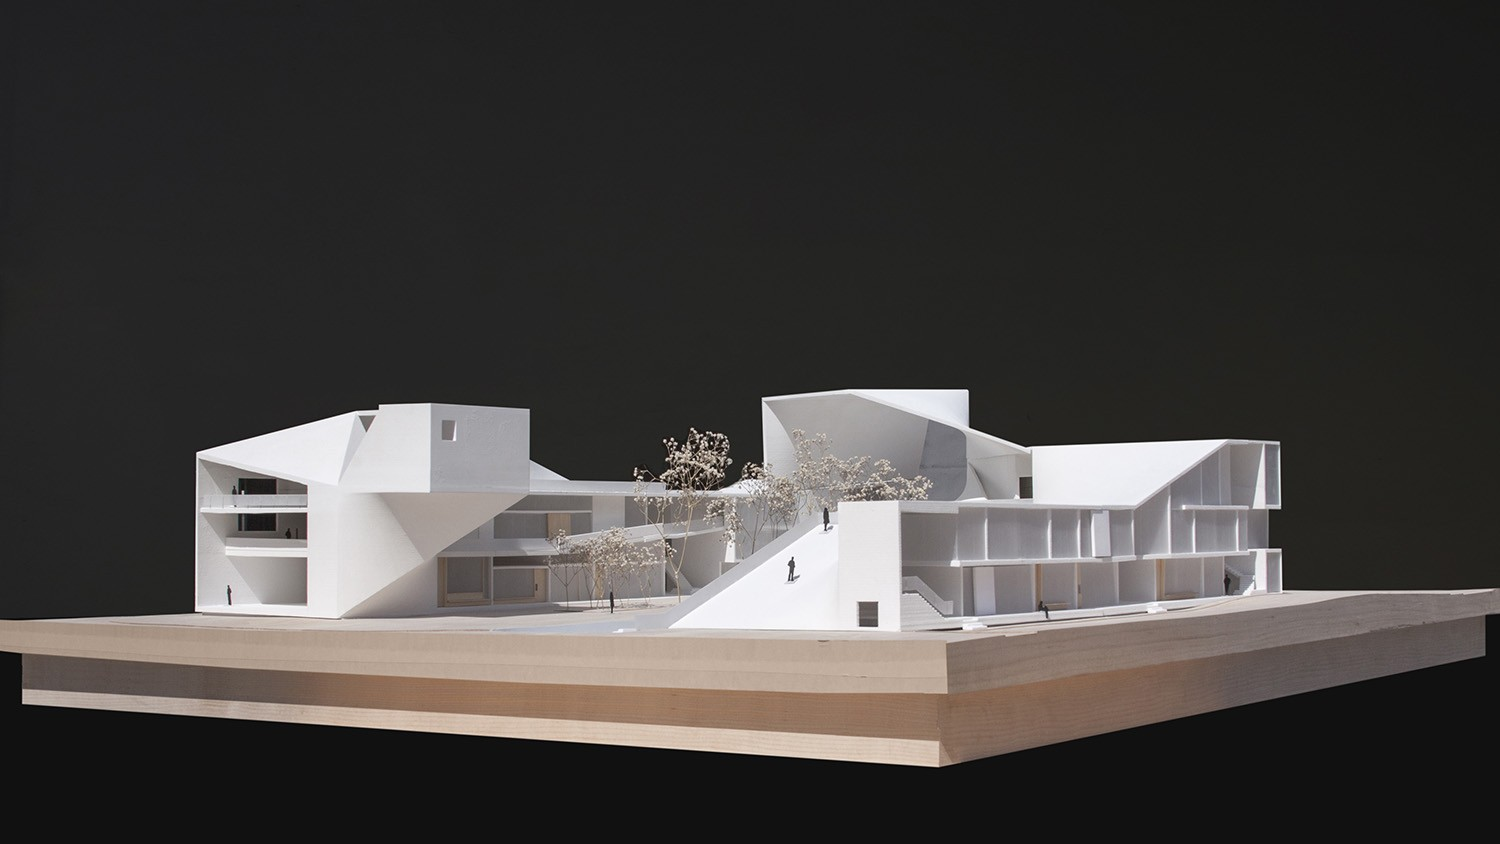 https://s3.us-east-2.amazonaws.com/steven-holl/uploads/projects/project-images/StevenHollArchitects_Bogota_IMG_6166-edit_WH.jpg